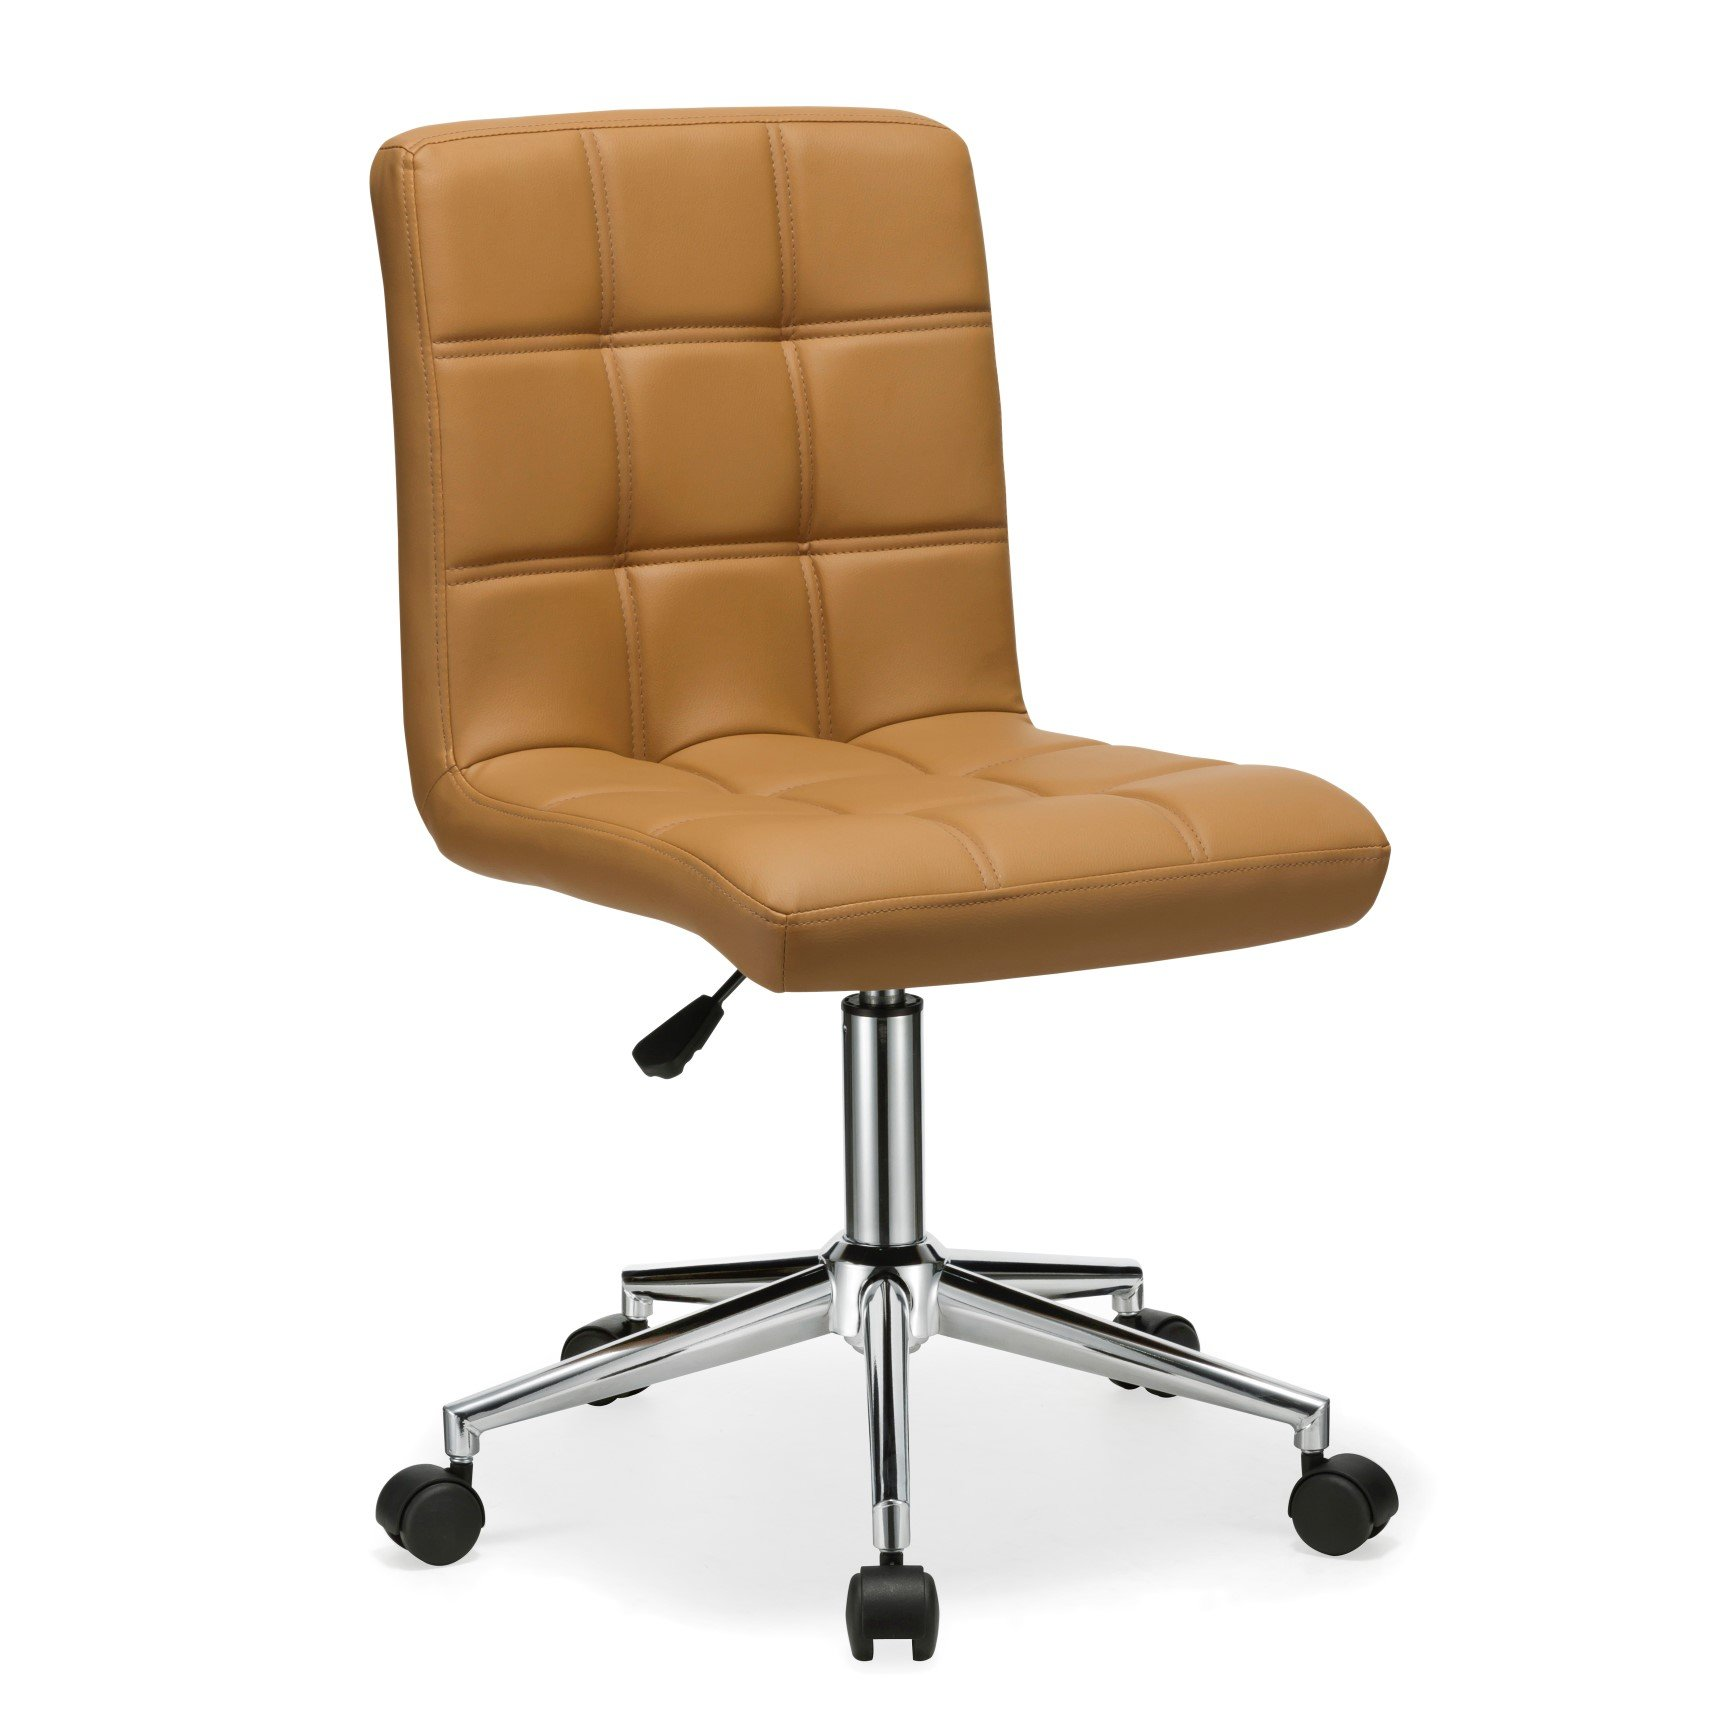 Porthos Home Finch Office Chair, Brown